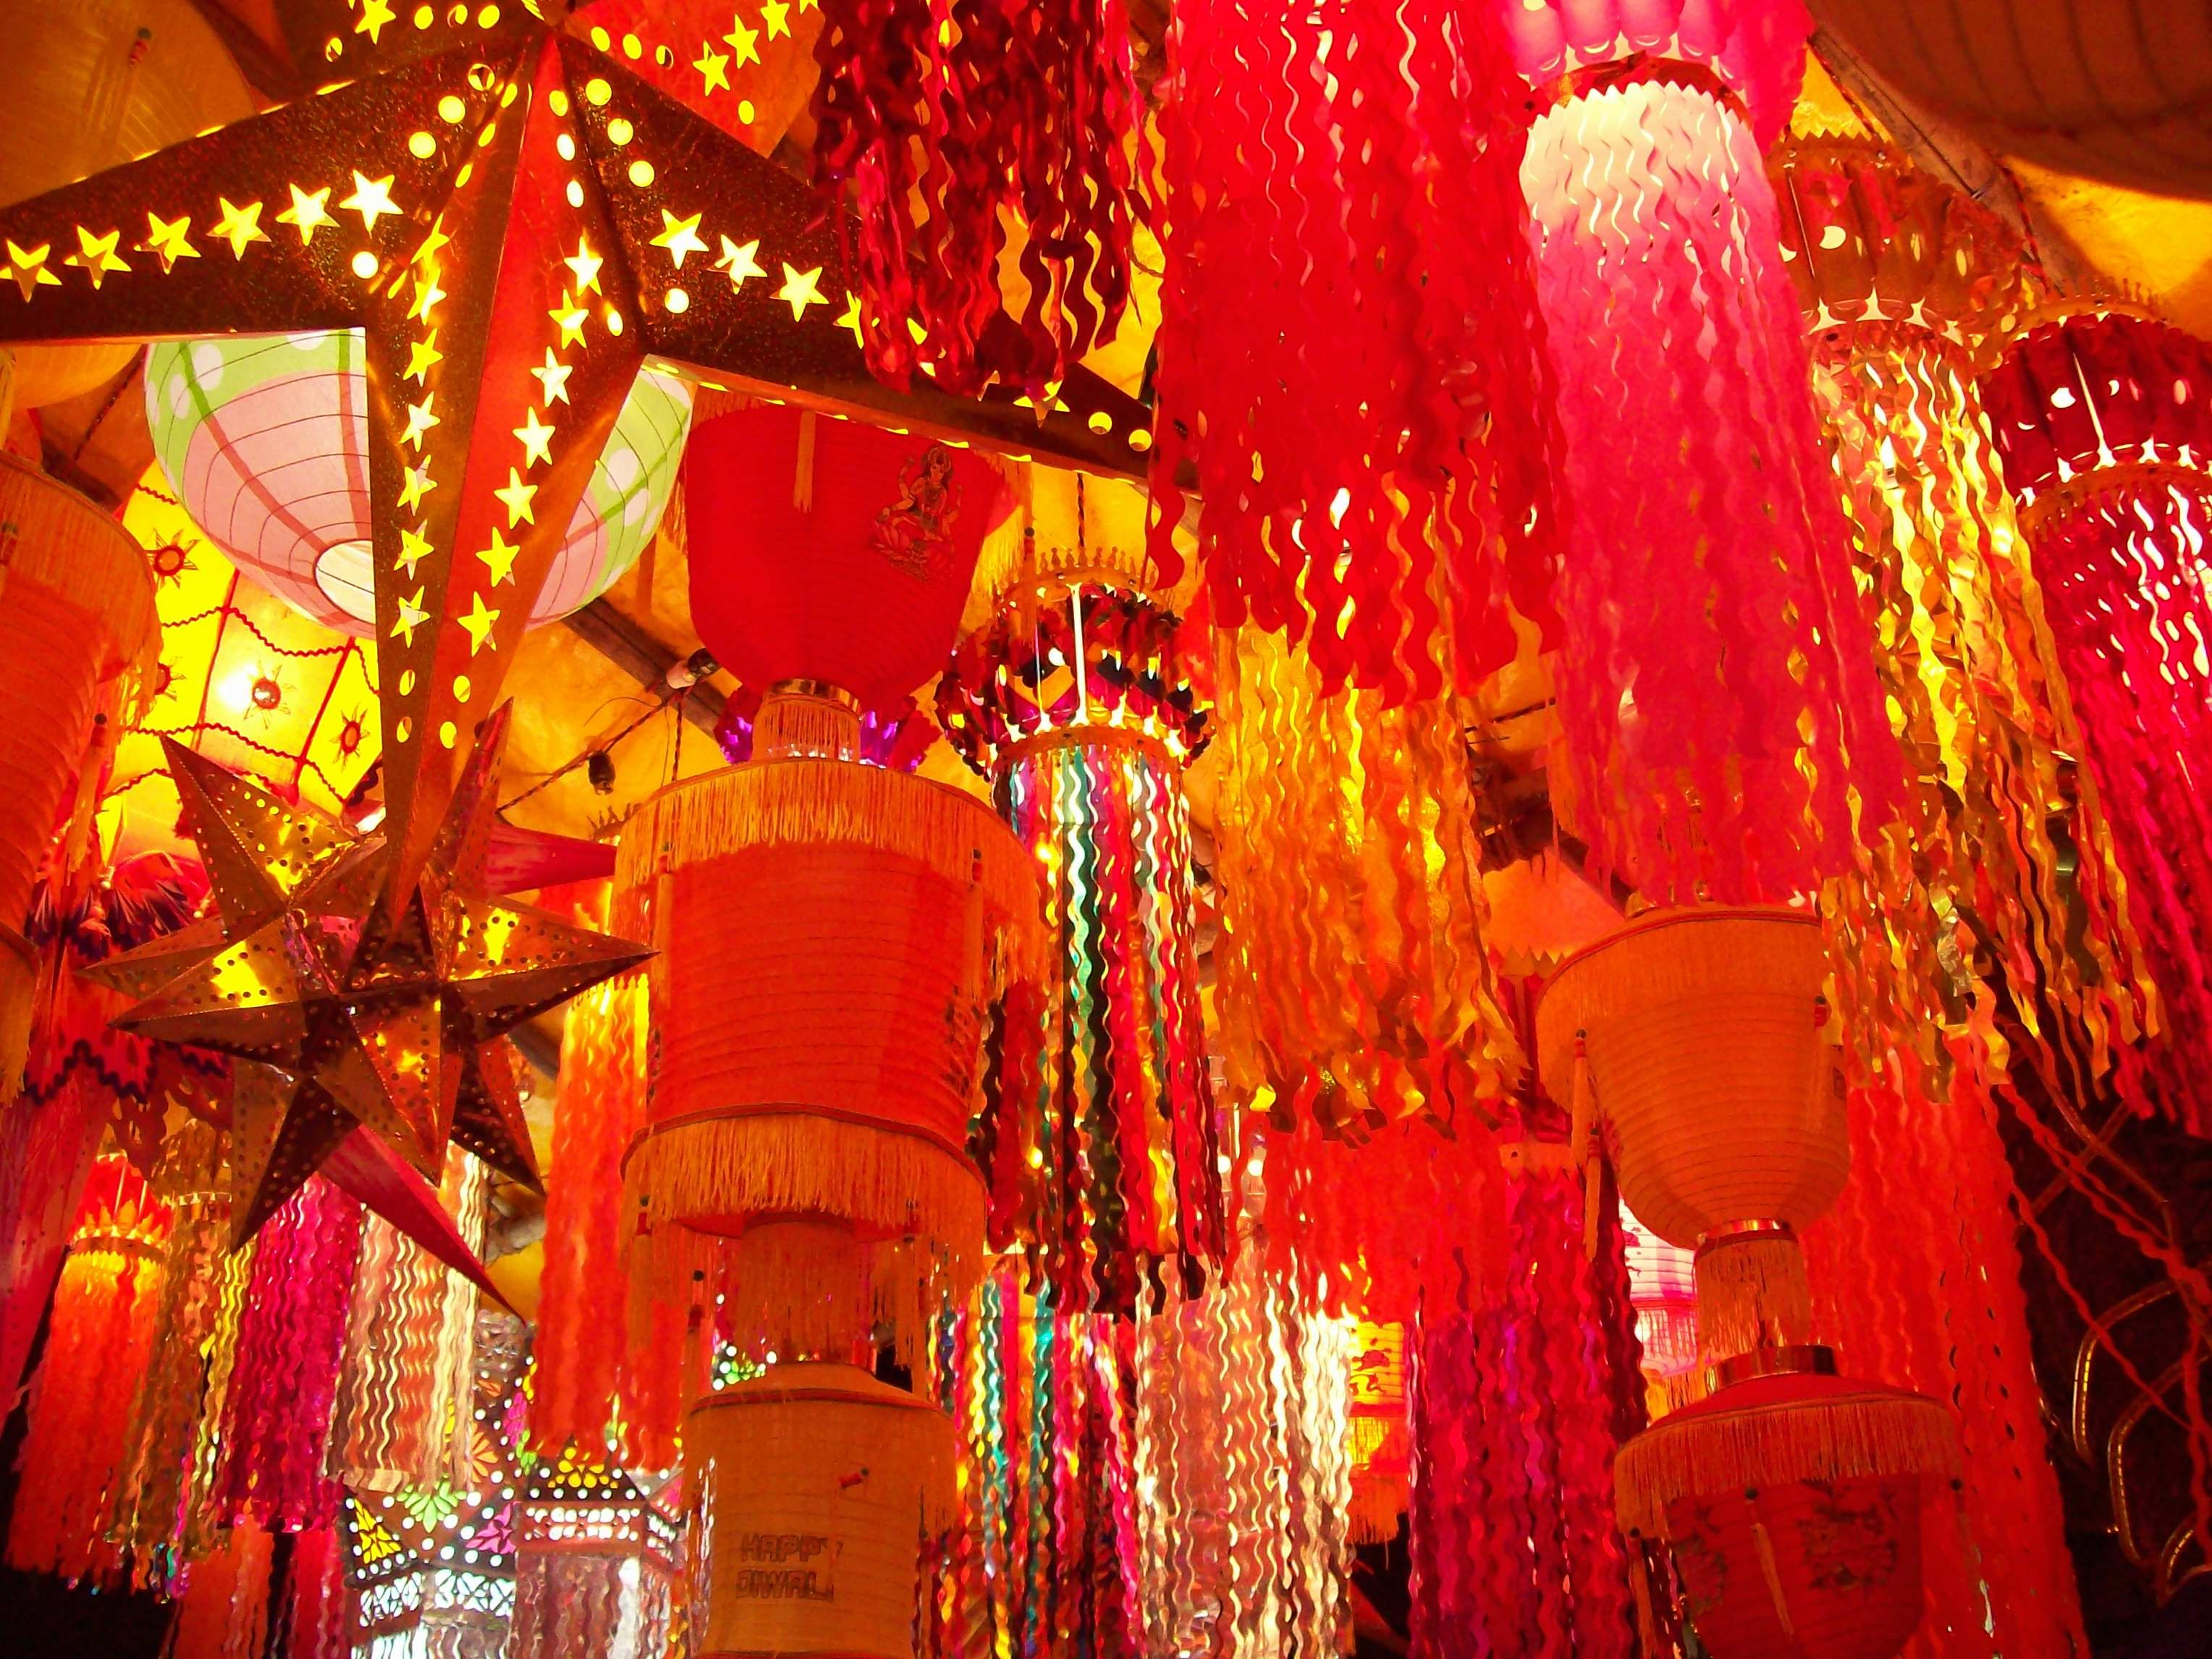 best images about diwali festival diwali lantern 17 best images about diwali festival diwali lantern in and hand painted